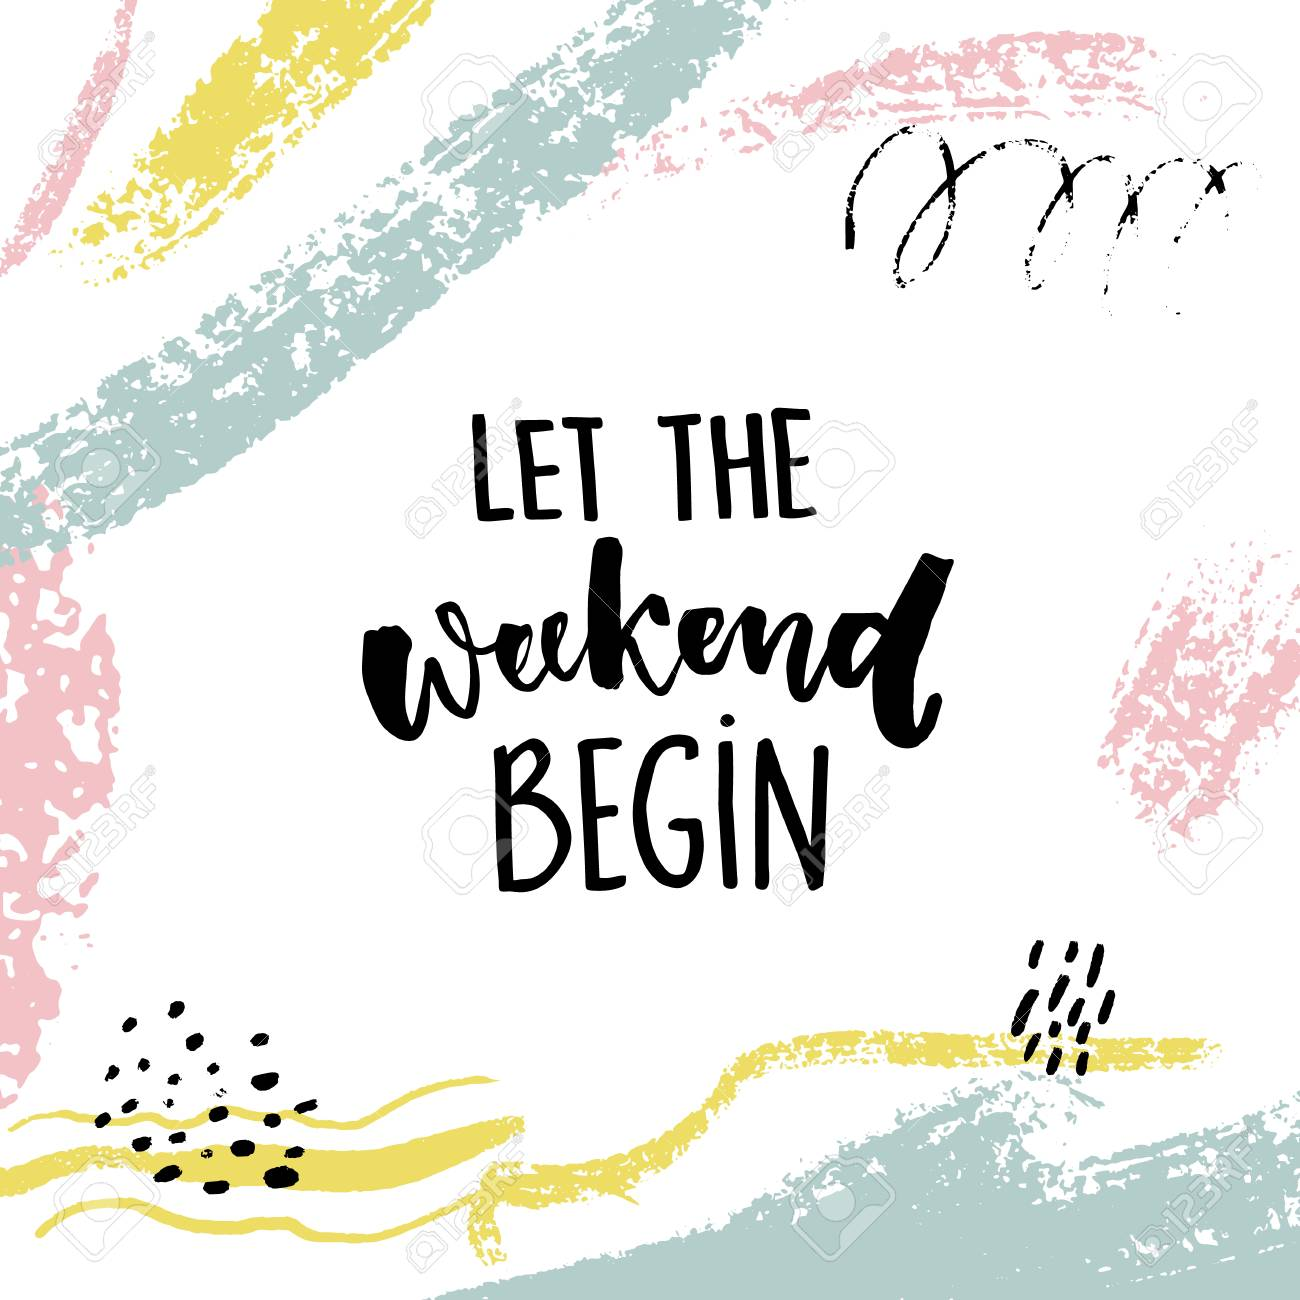 Let the weekend begin. Fun quote about saturday, office motivation quote. Vector calligraphy on white background with brush strokes and hand marks - 89177718